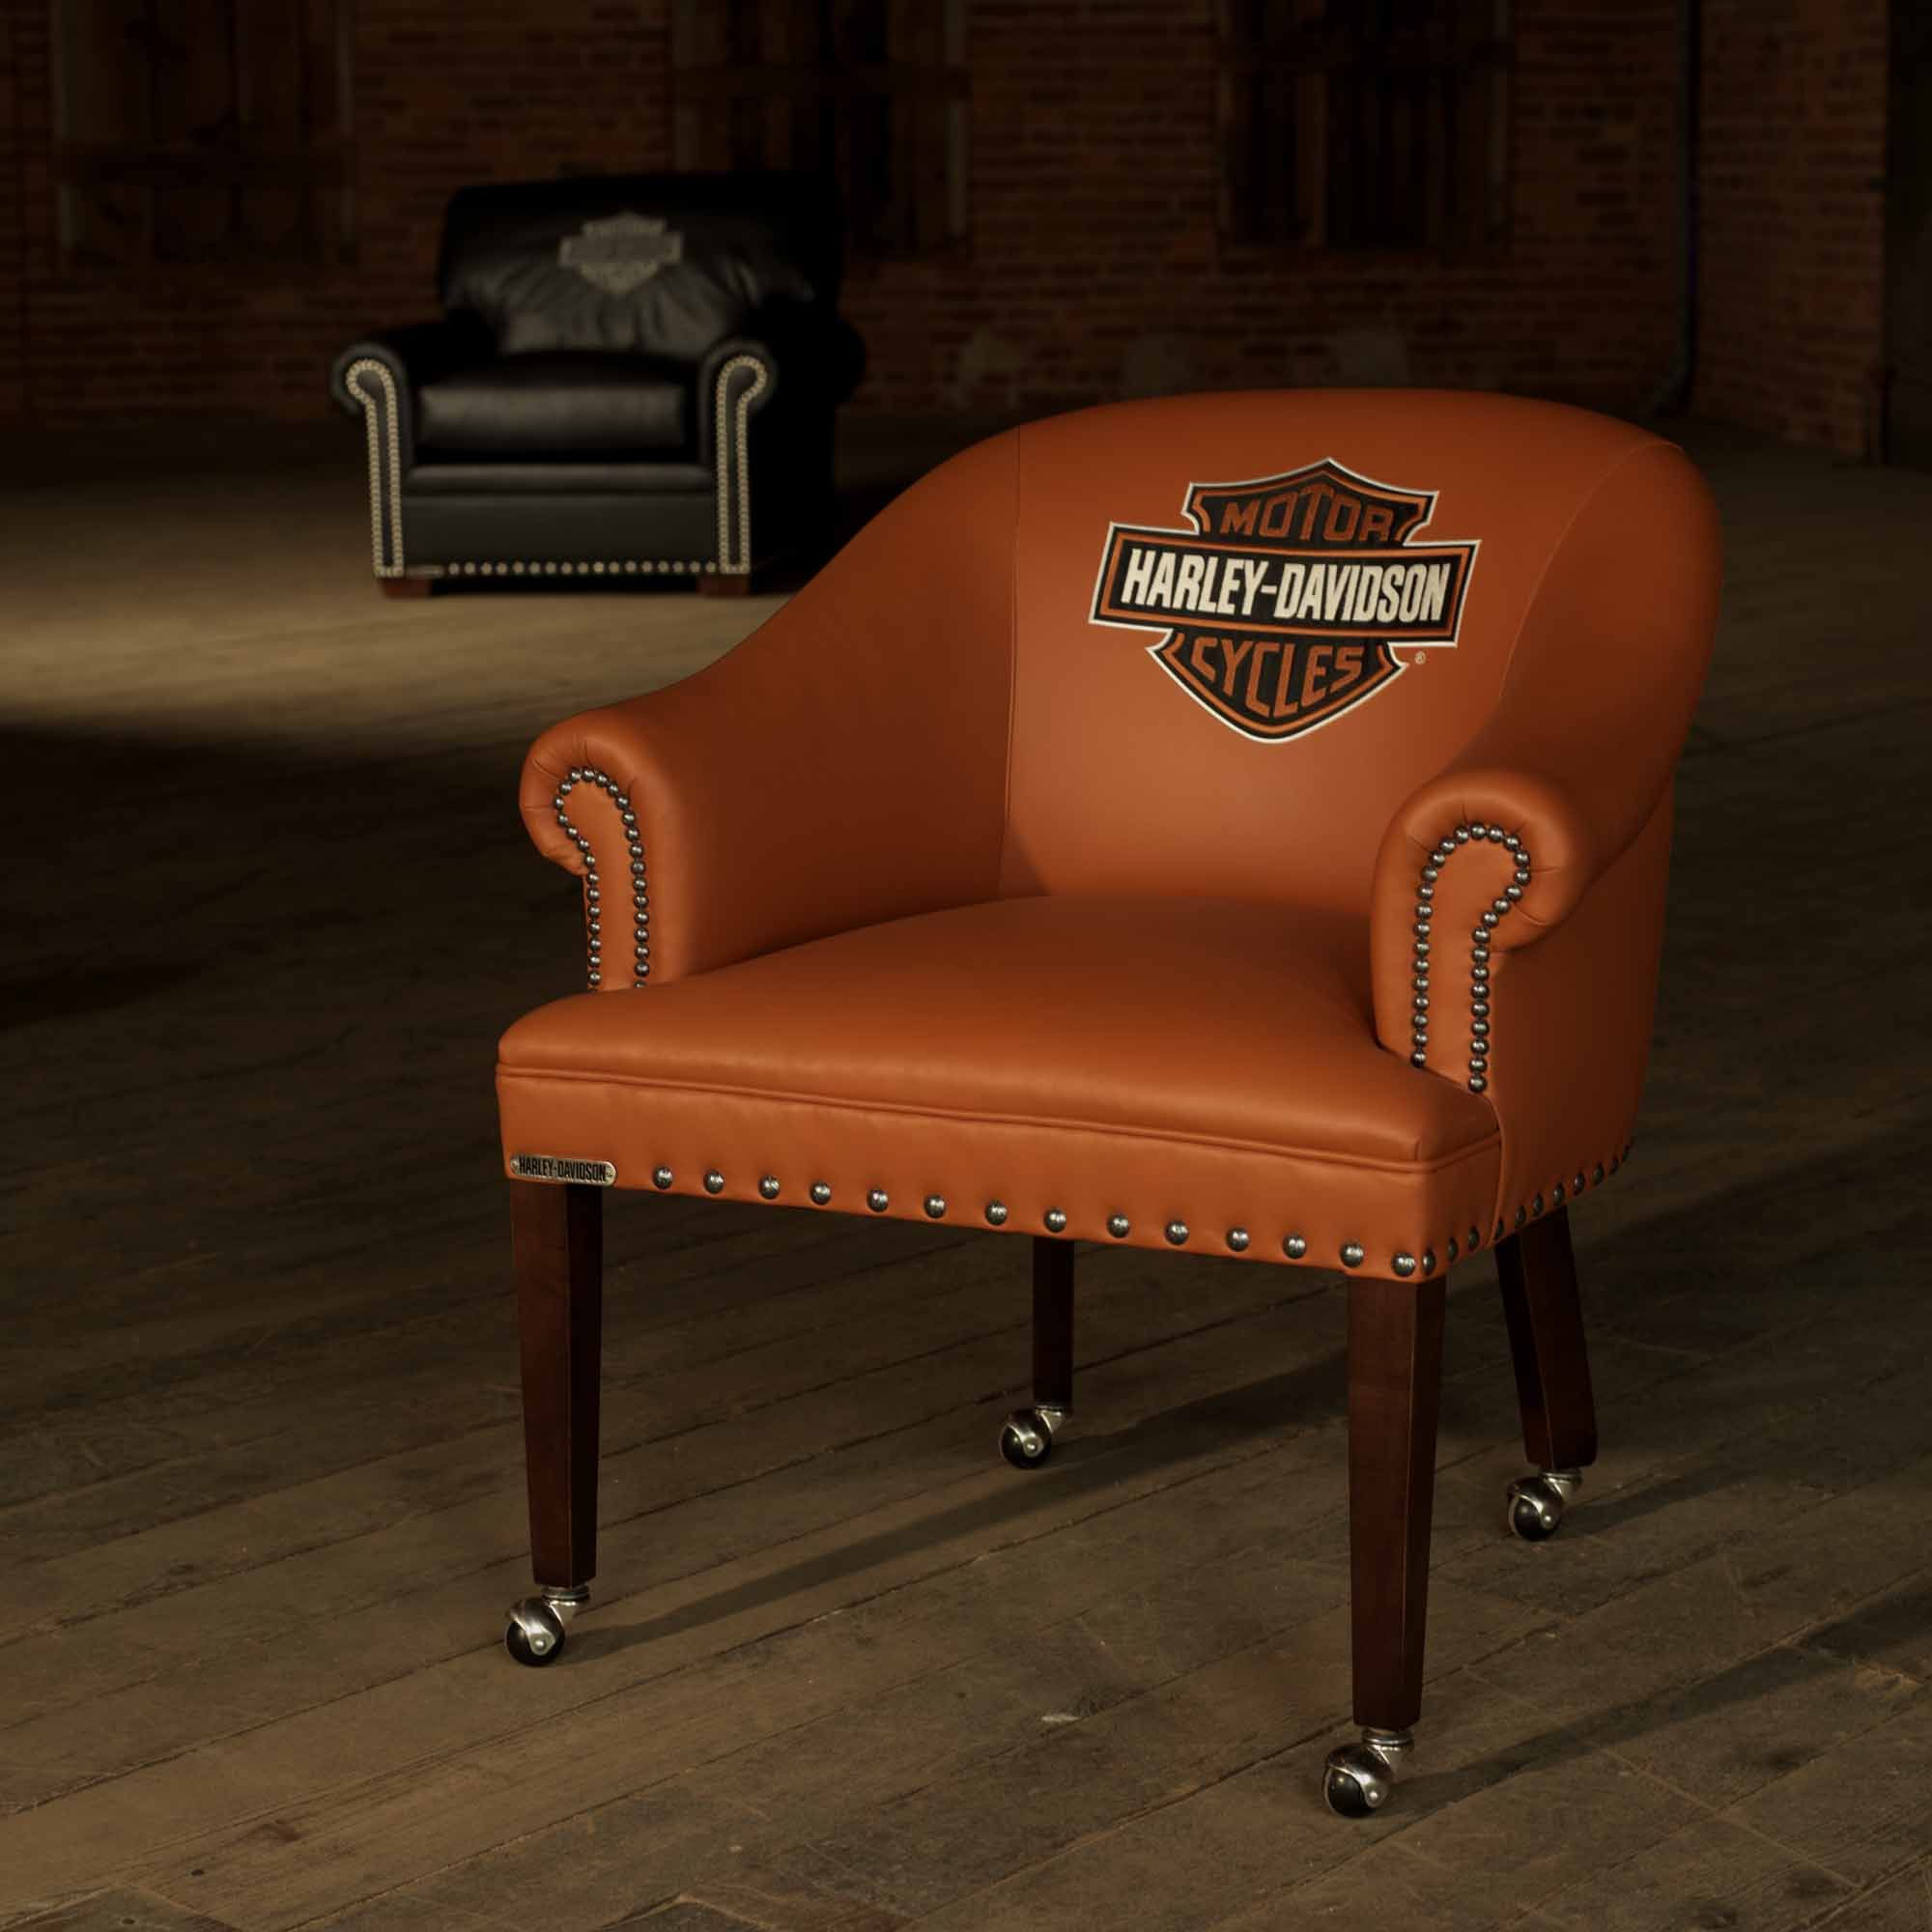 Pin By Classic Leather Inc On Harley Davidson Furniture